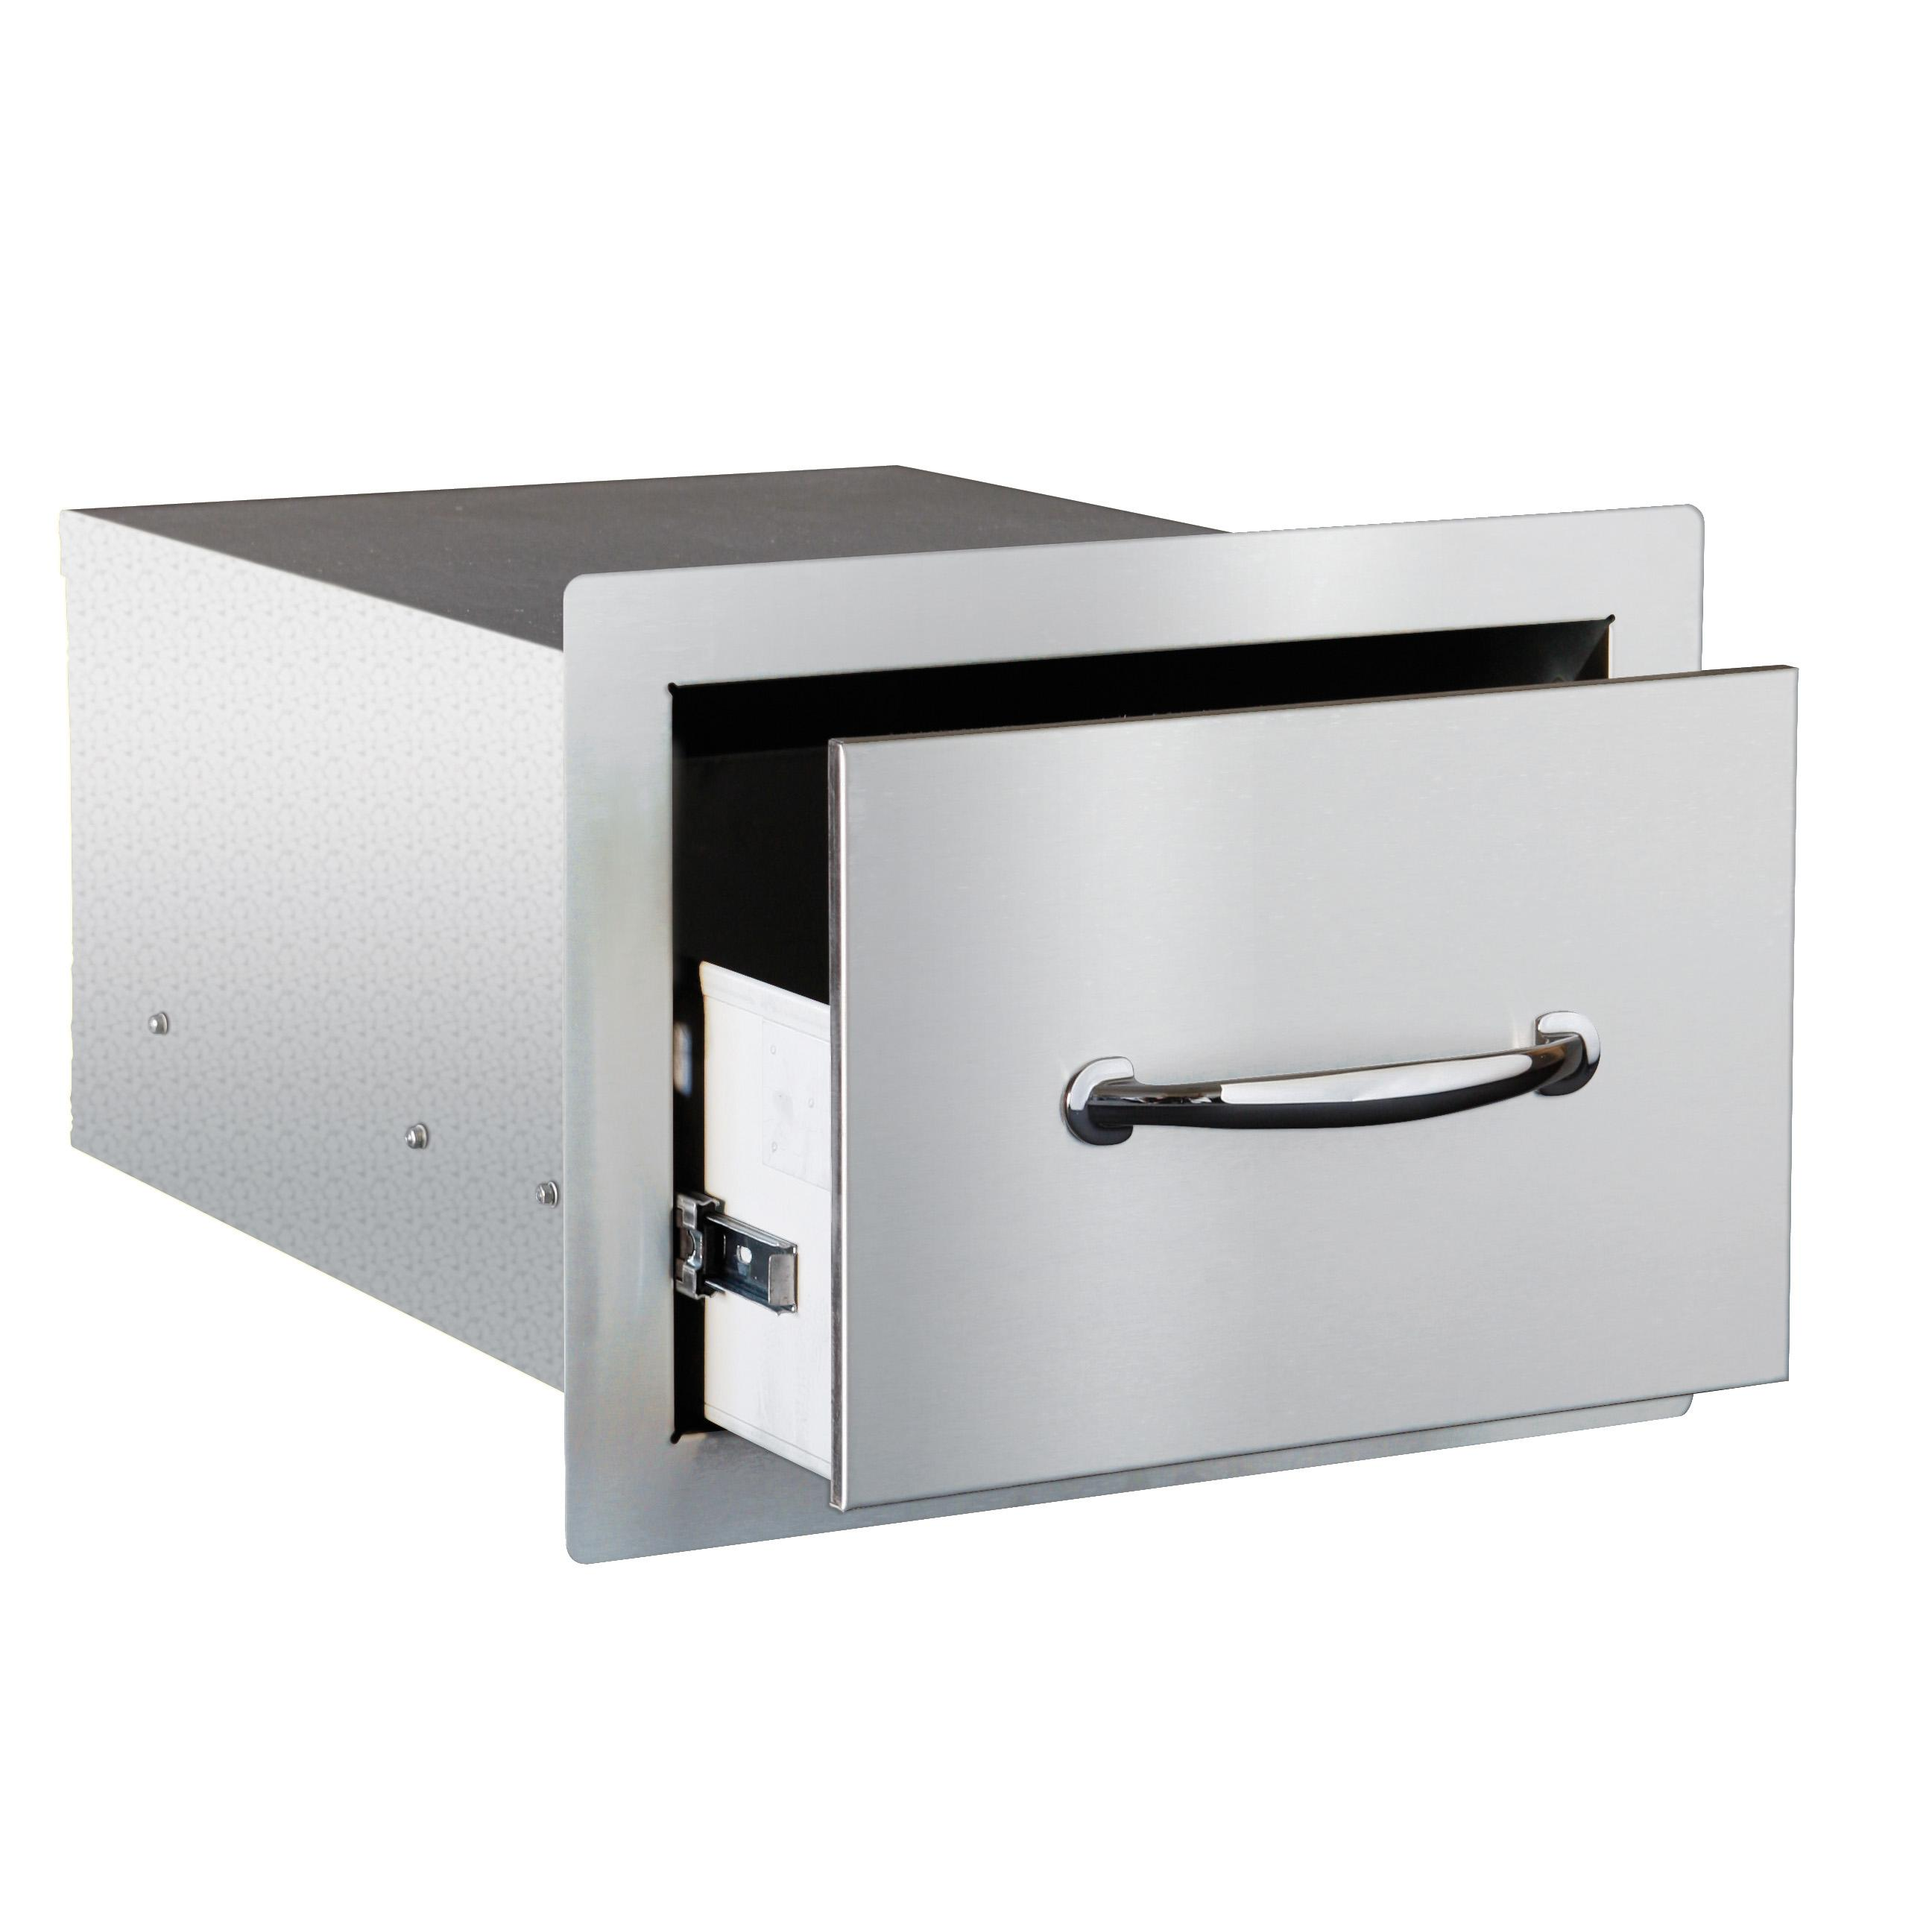 bathroom images vanities vanity only with hawthorne single drawers cabinet small bath file drawer sets foremost inch dns